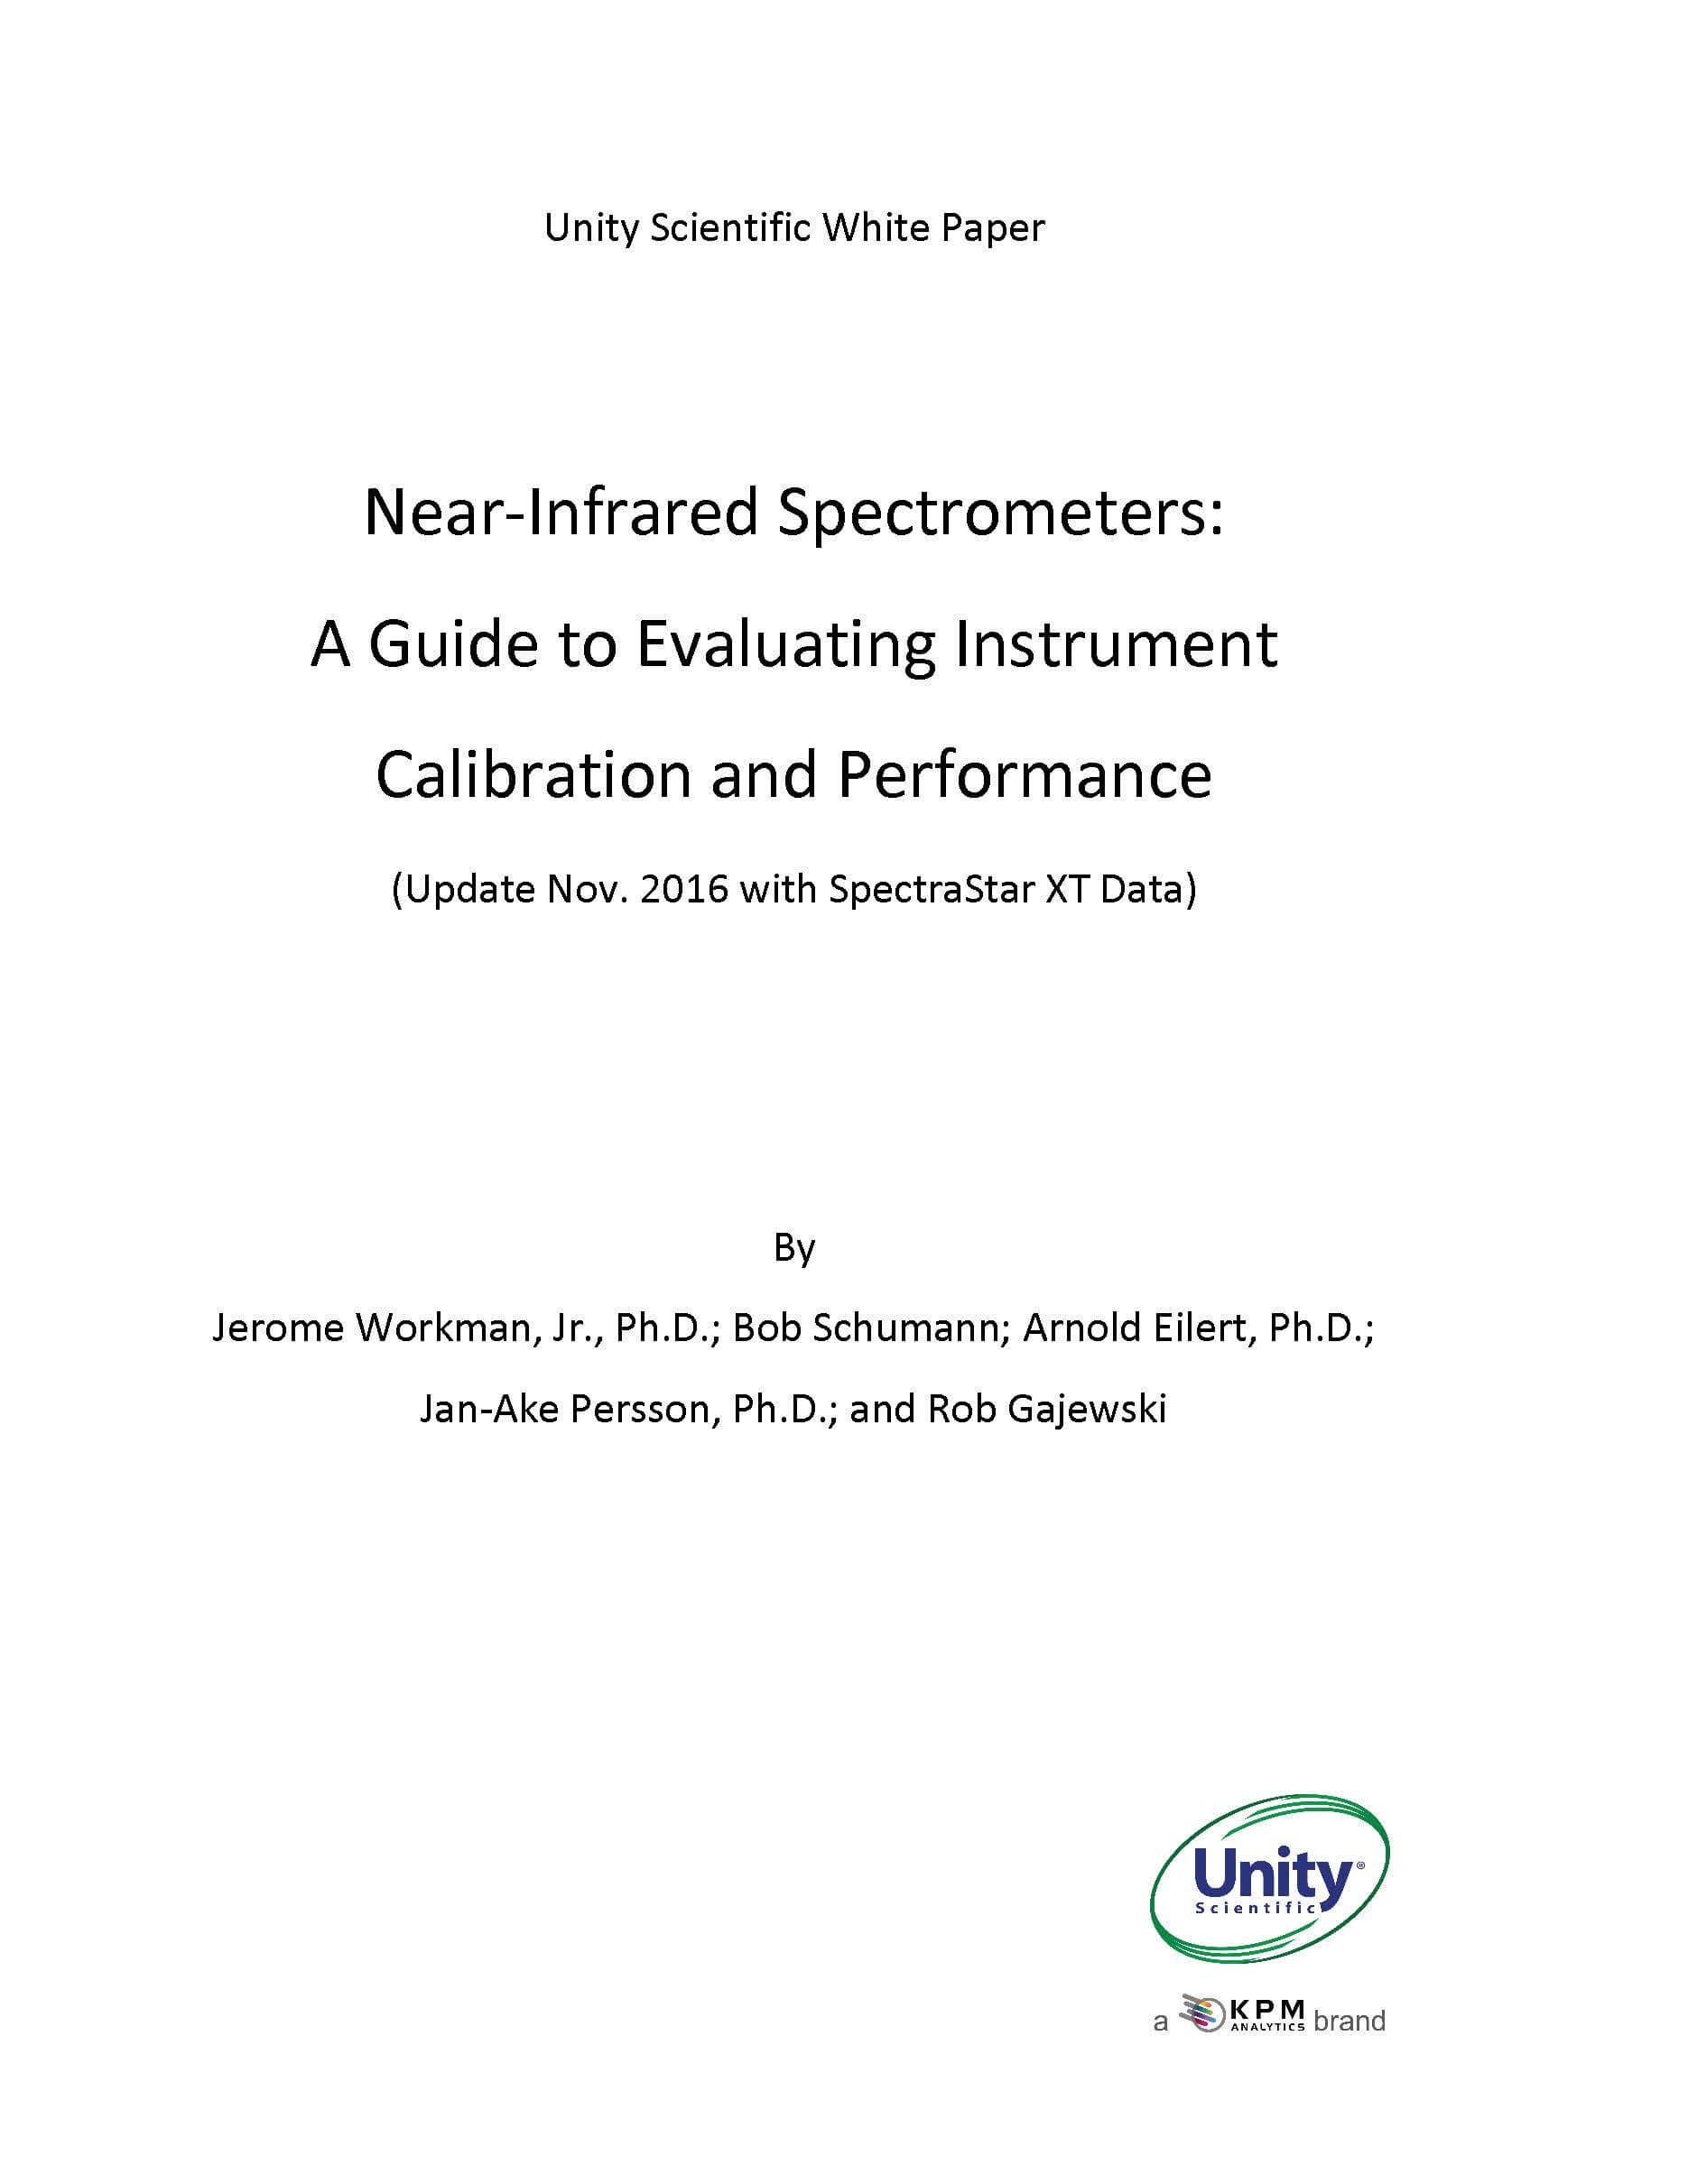 NIR Spectrometers:  A Guide to Evaluating Instrument  Calibration and Performance